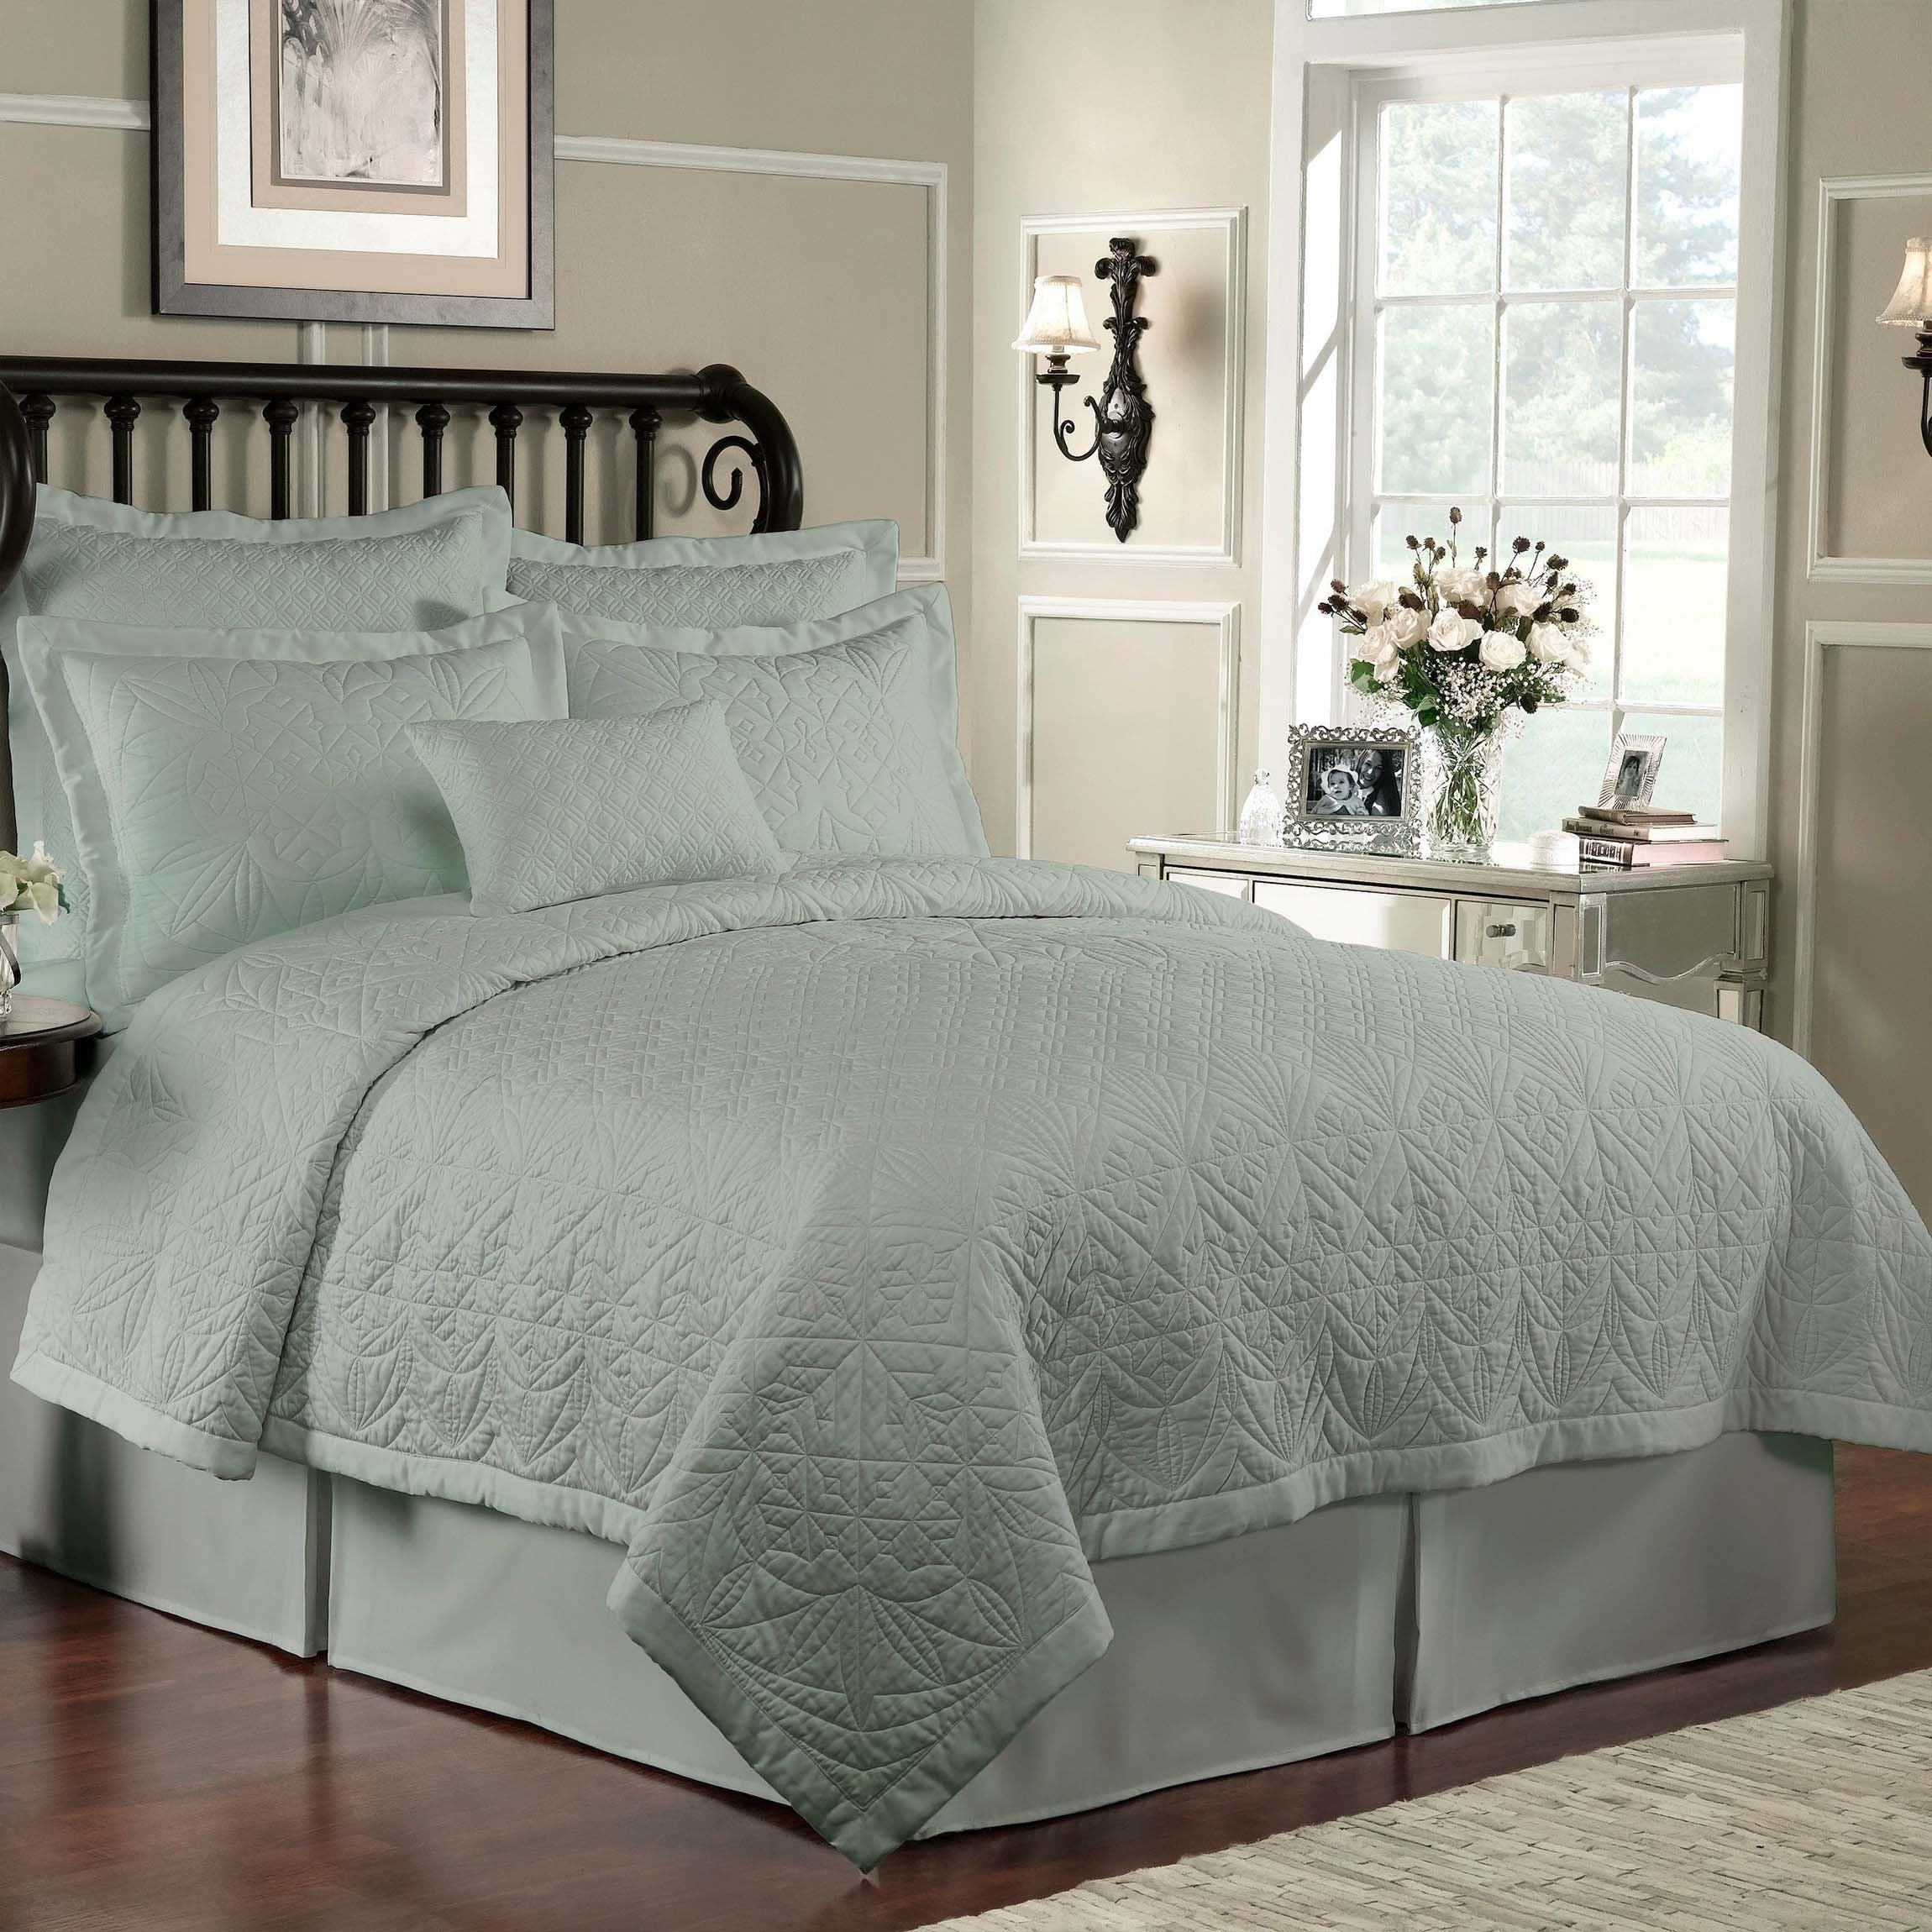 Lismore Sage Quilt [Luxury comforter Sets] [by Latest Bedding]